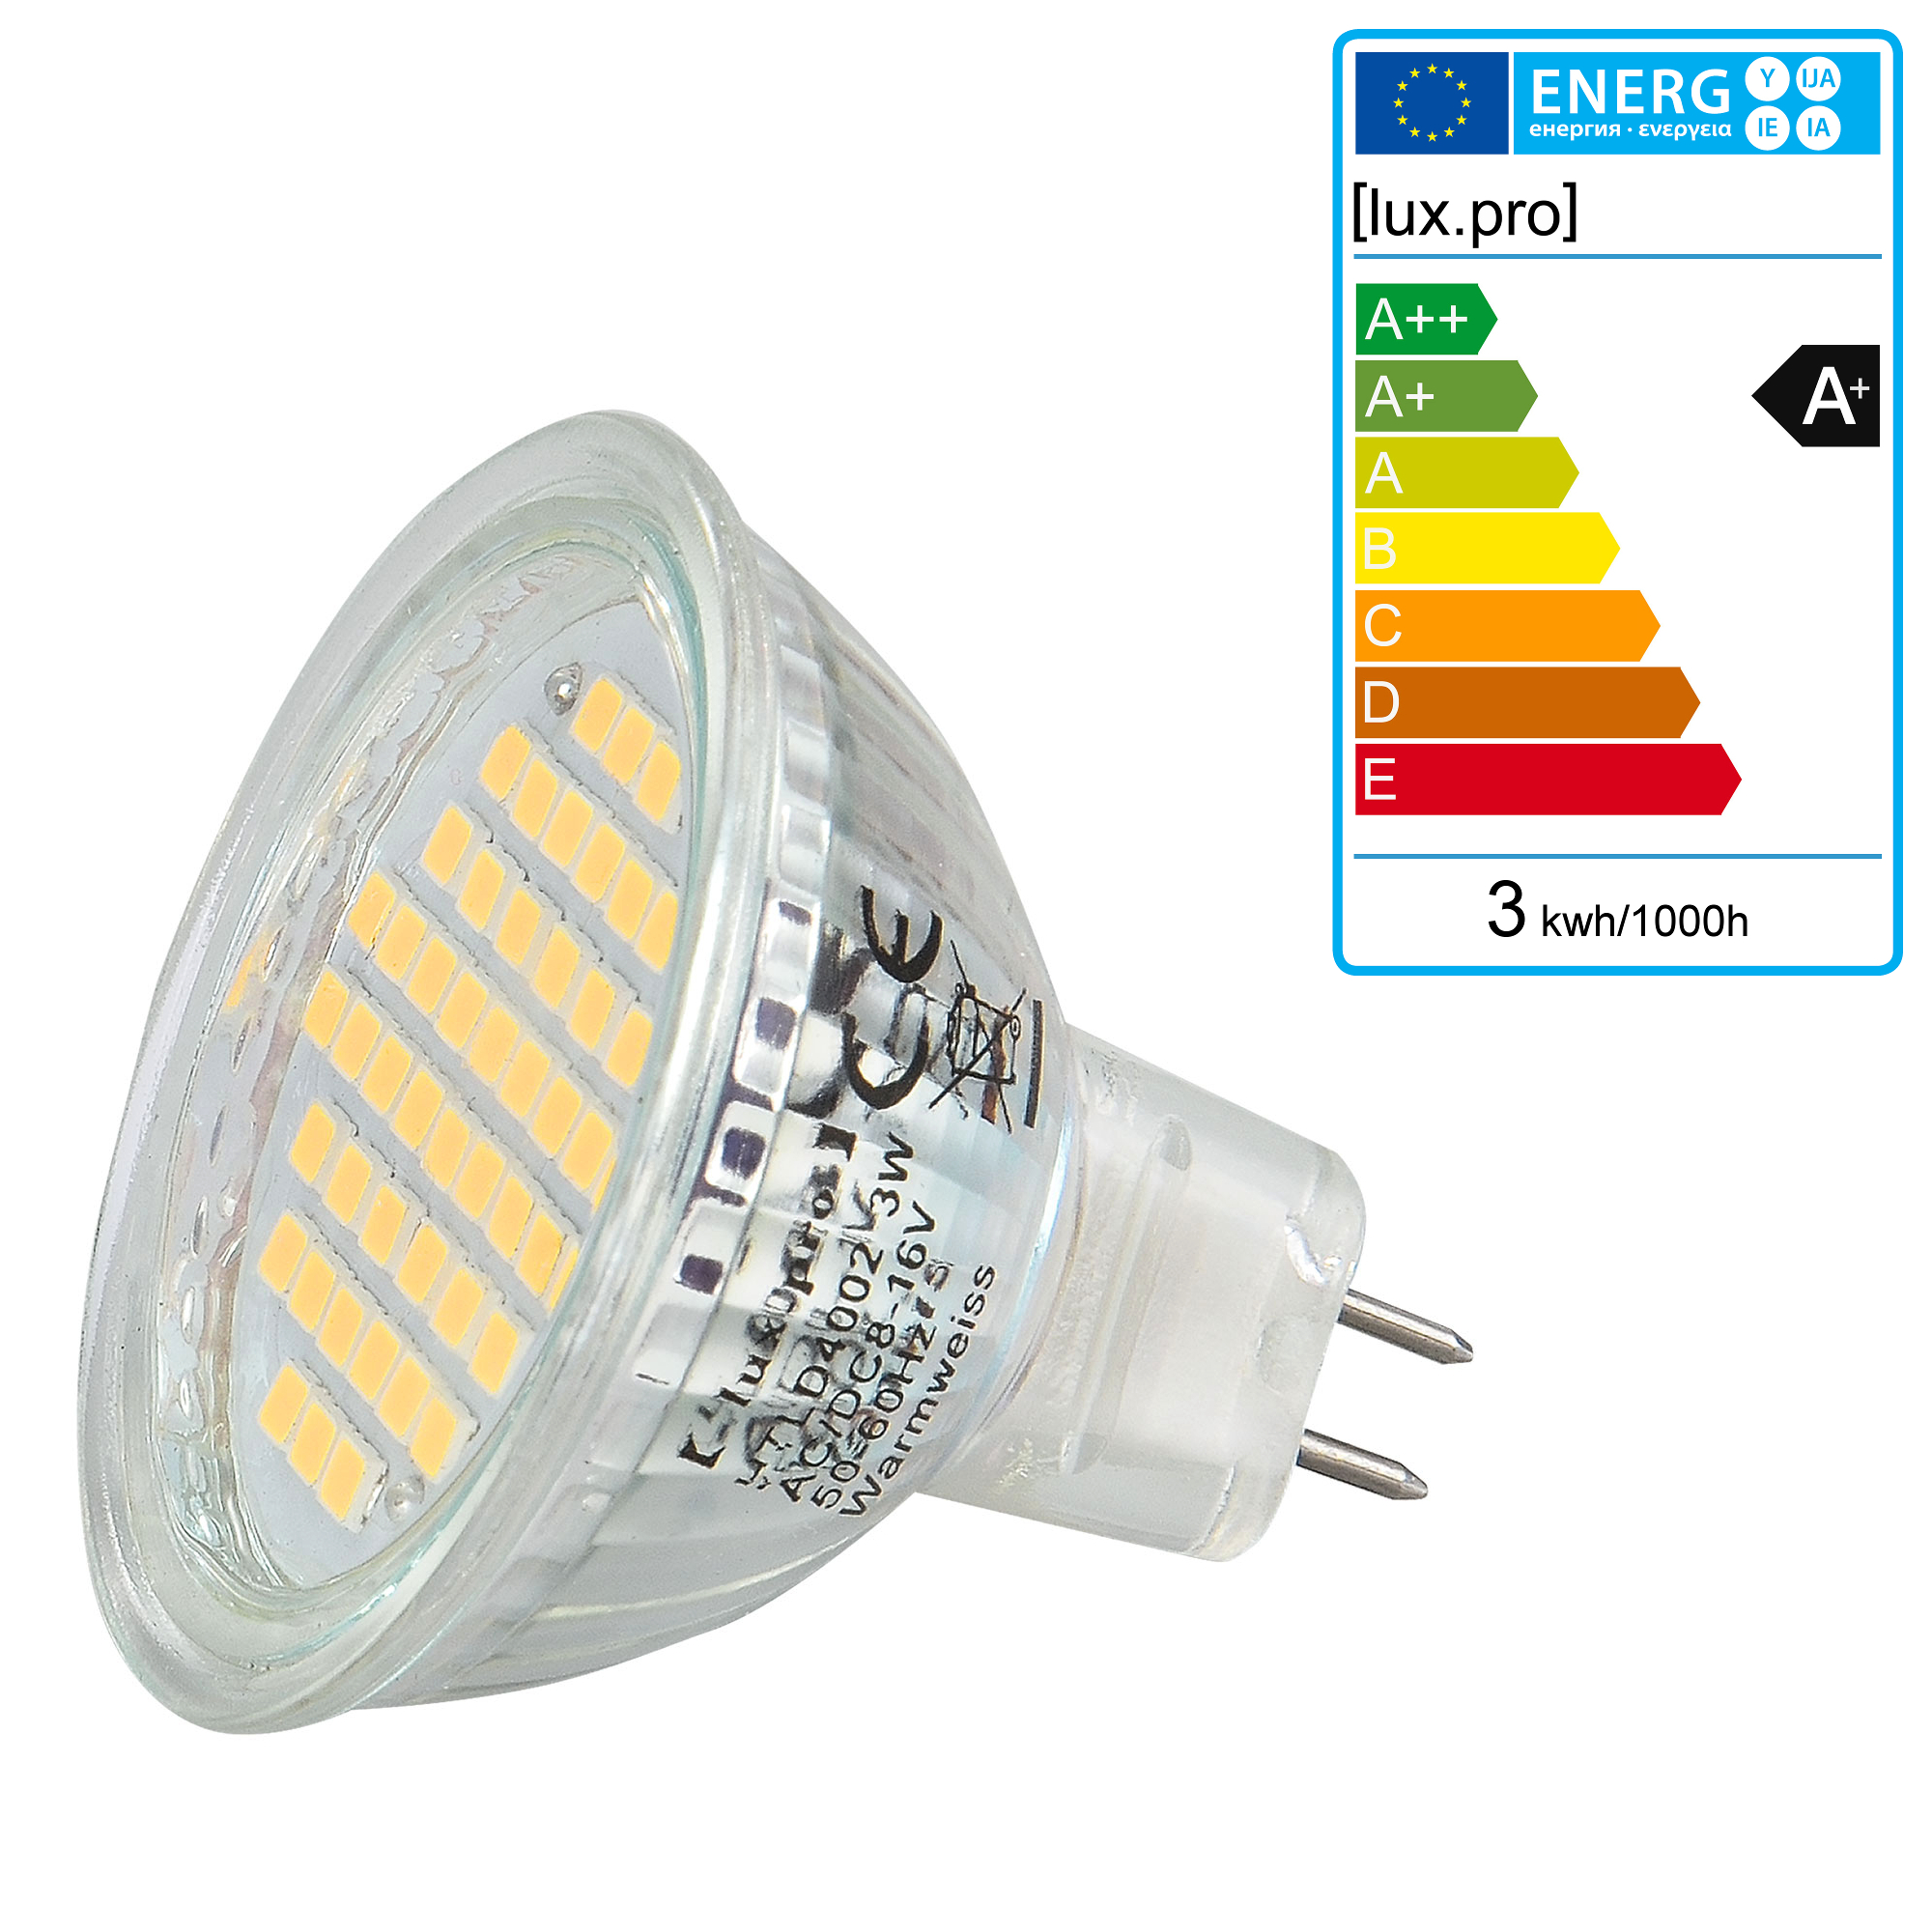 10x-lux-pro-LED-SPOT-MR16-GU5-3-warmweiss-3Watt-8-24V-AC-DC-3000K-54-SMD-s-Lampe